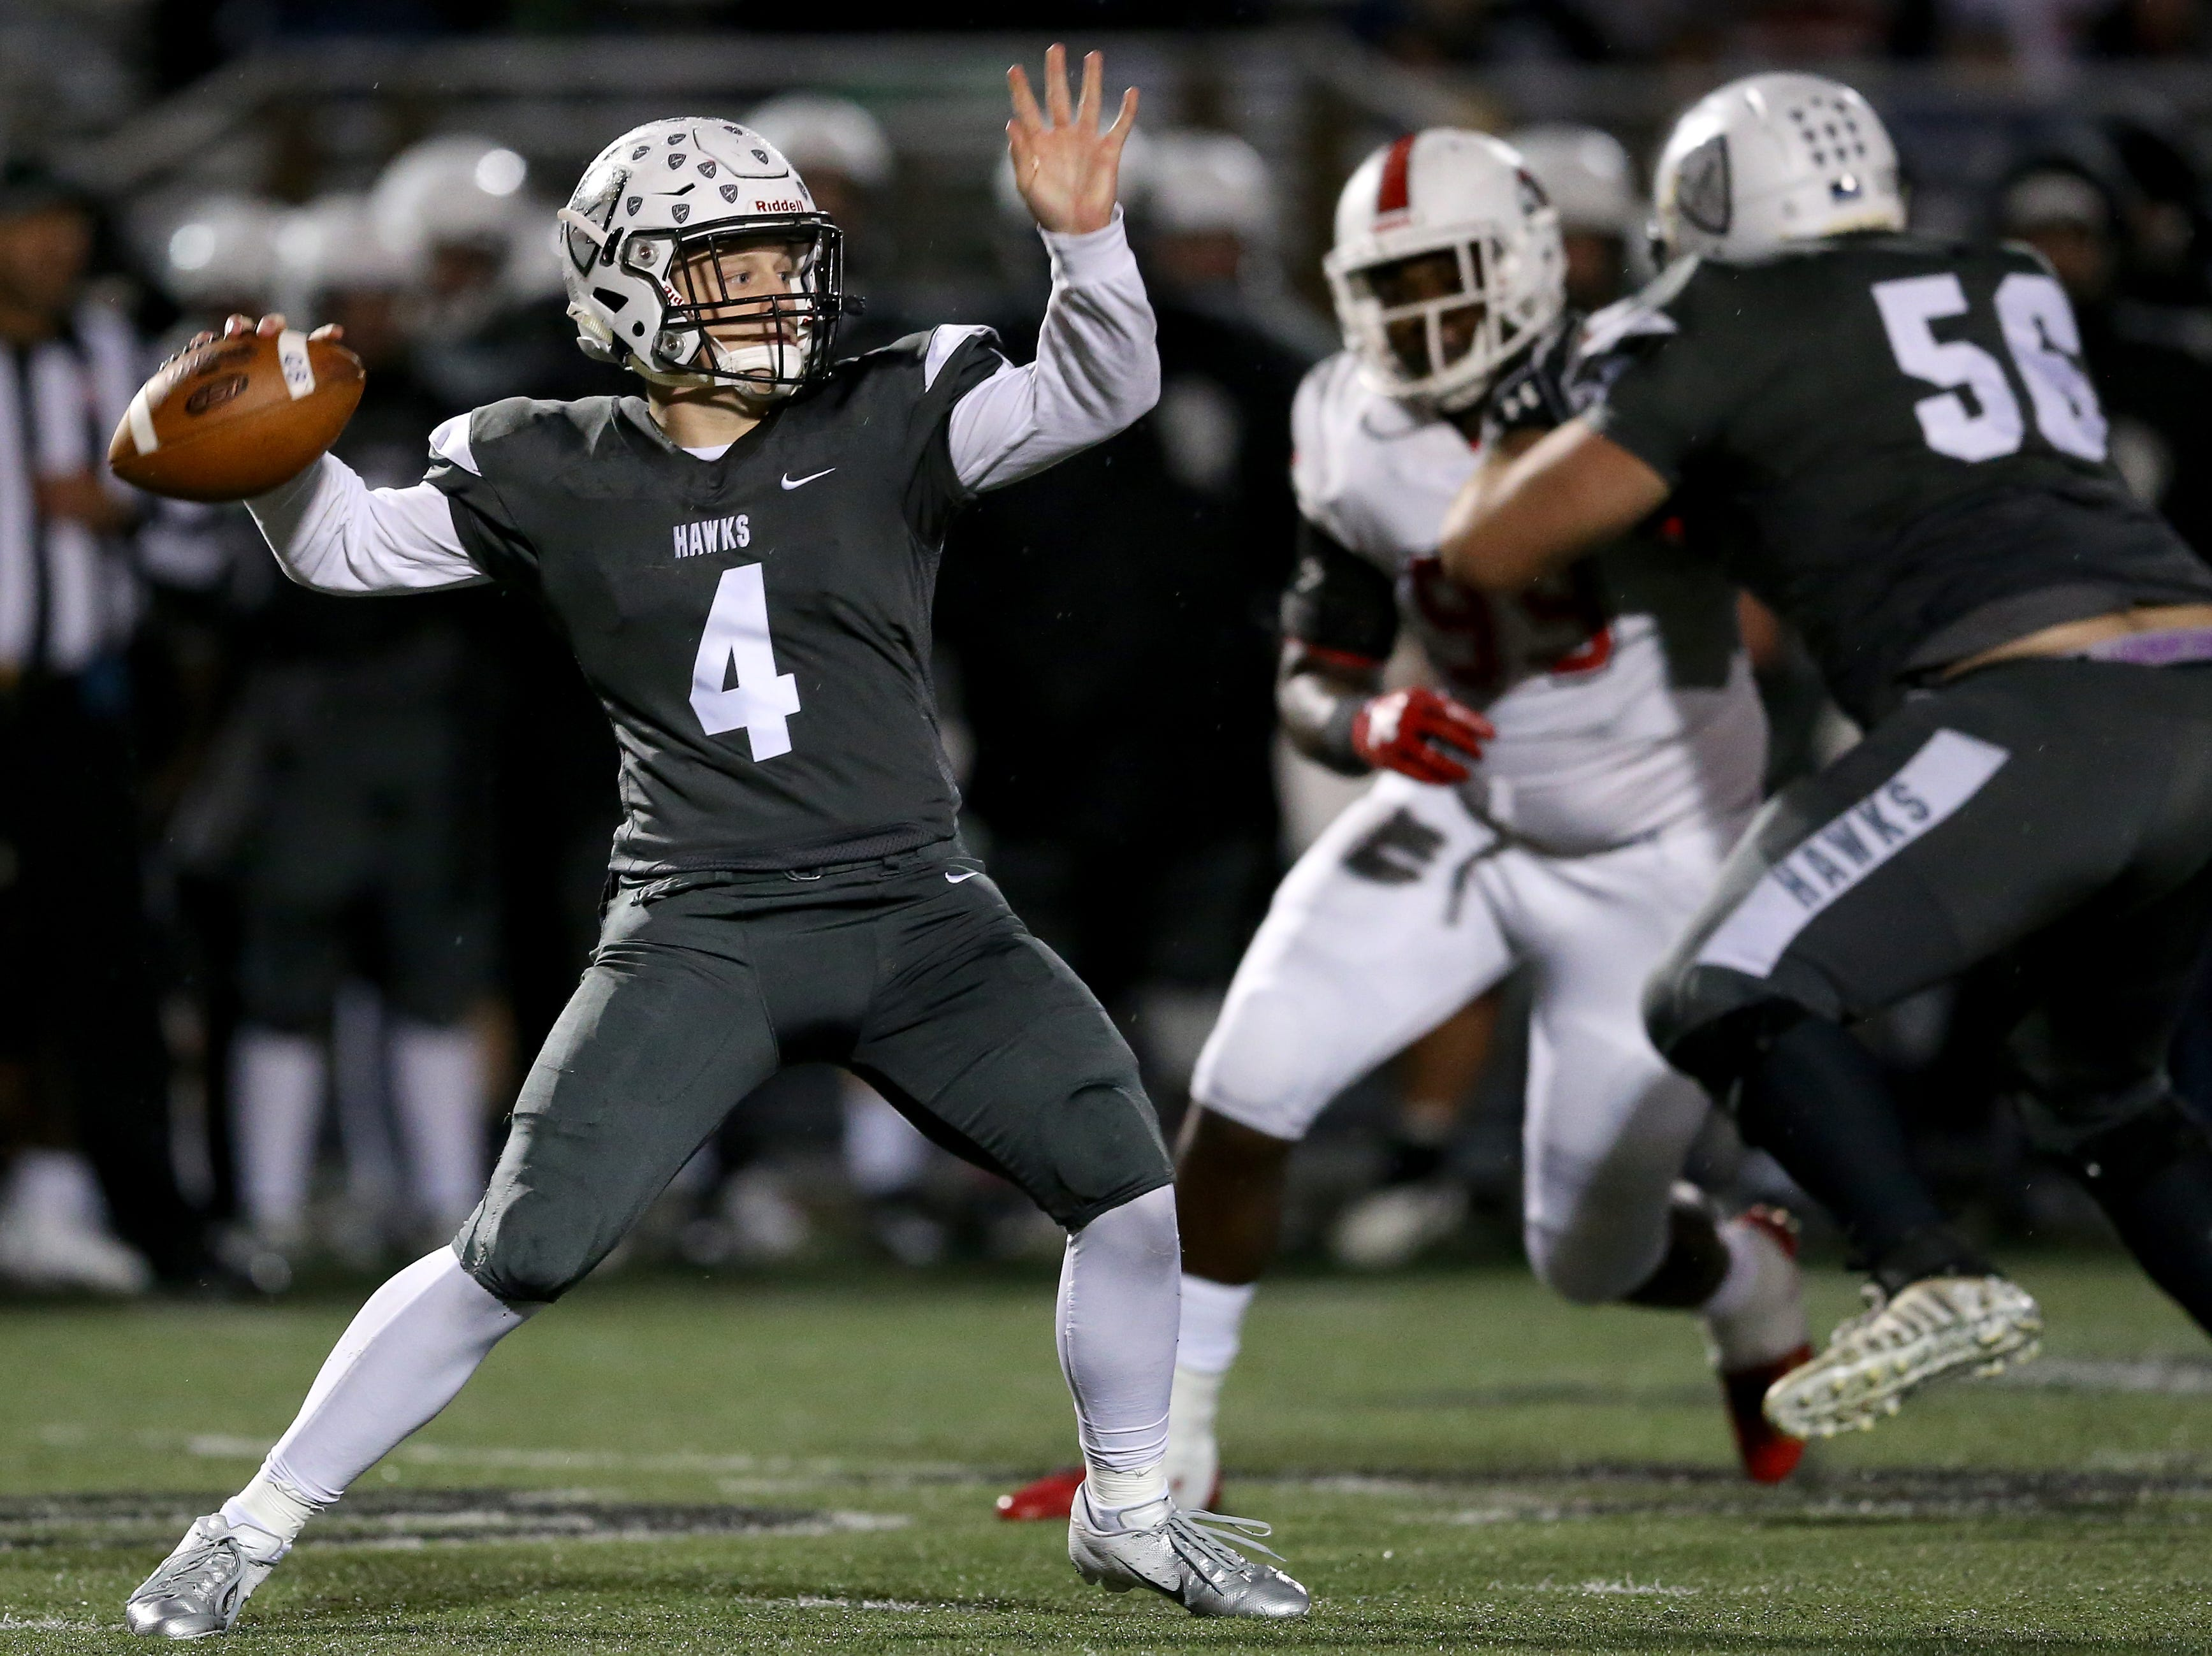 Lakota East Thunderhawks quarterback Sean Church (4) throws in the first quarter during a high school football game between the Colerain Cardinals and the Lakota East Thunderhawks, Friday, Oct. 12, 2018, at Lakota East High School in Liberty Township, Ohio.